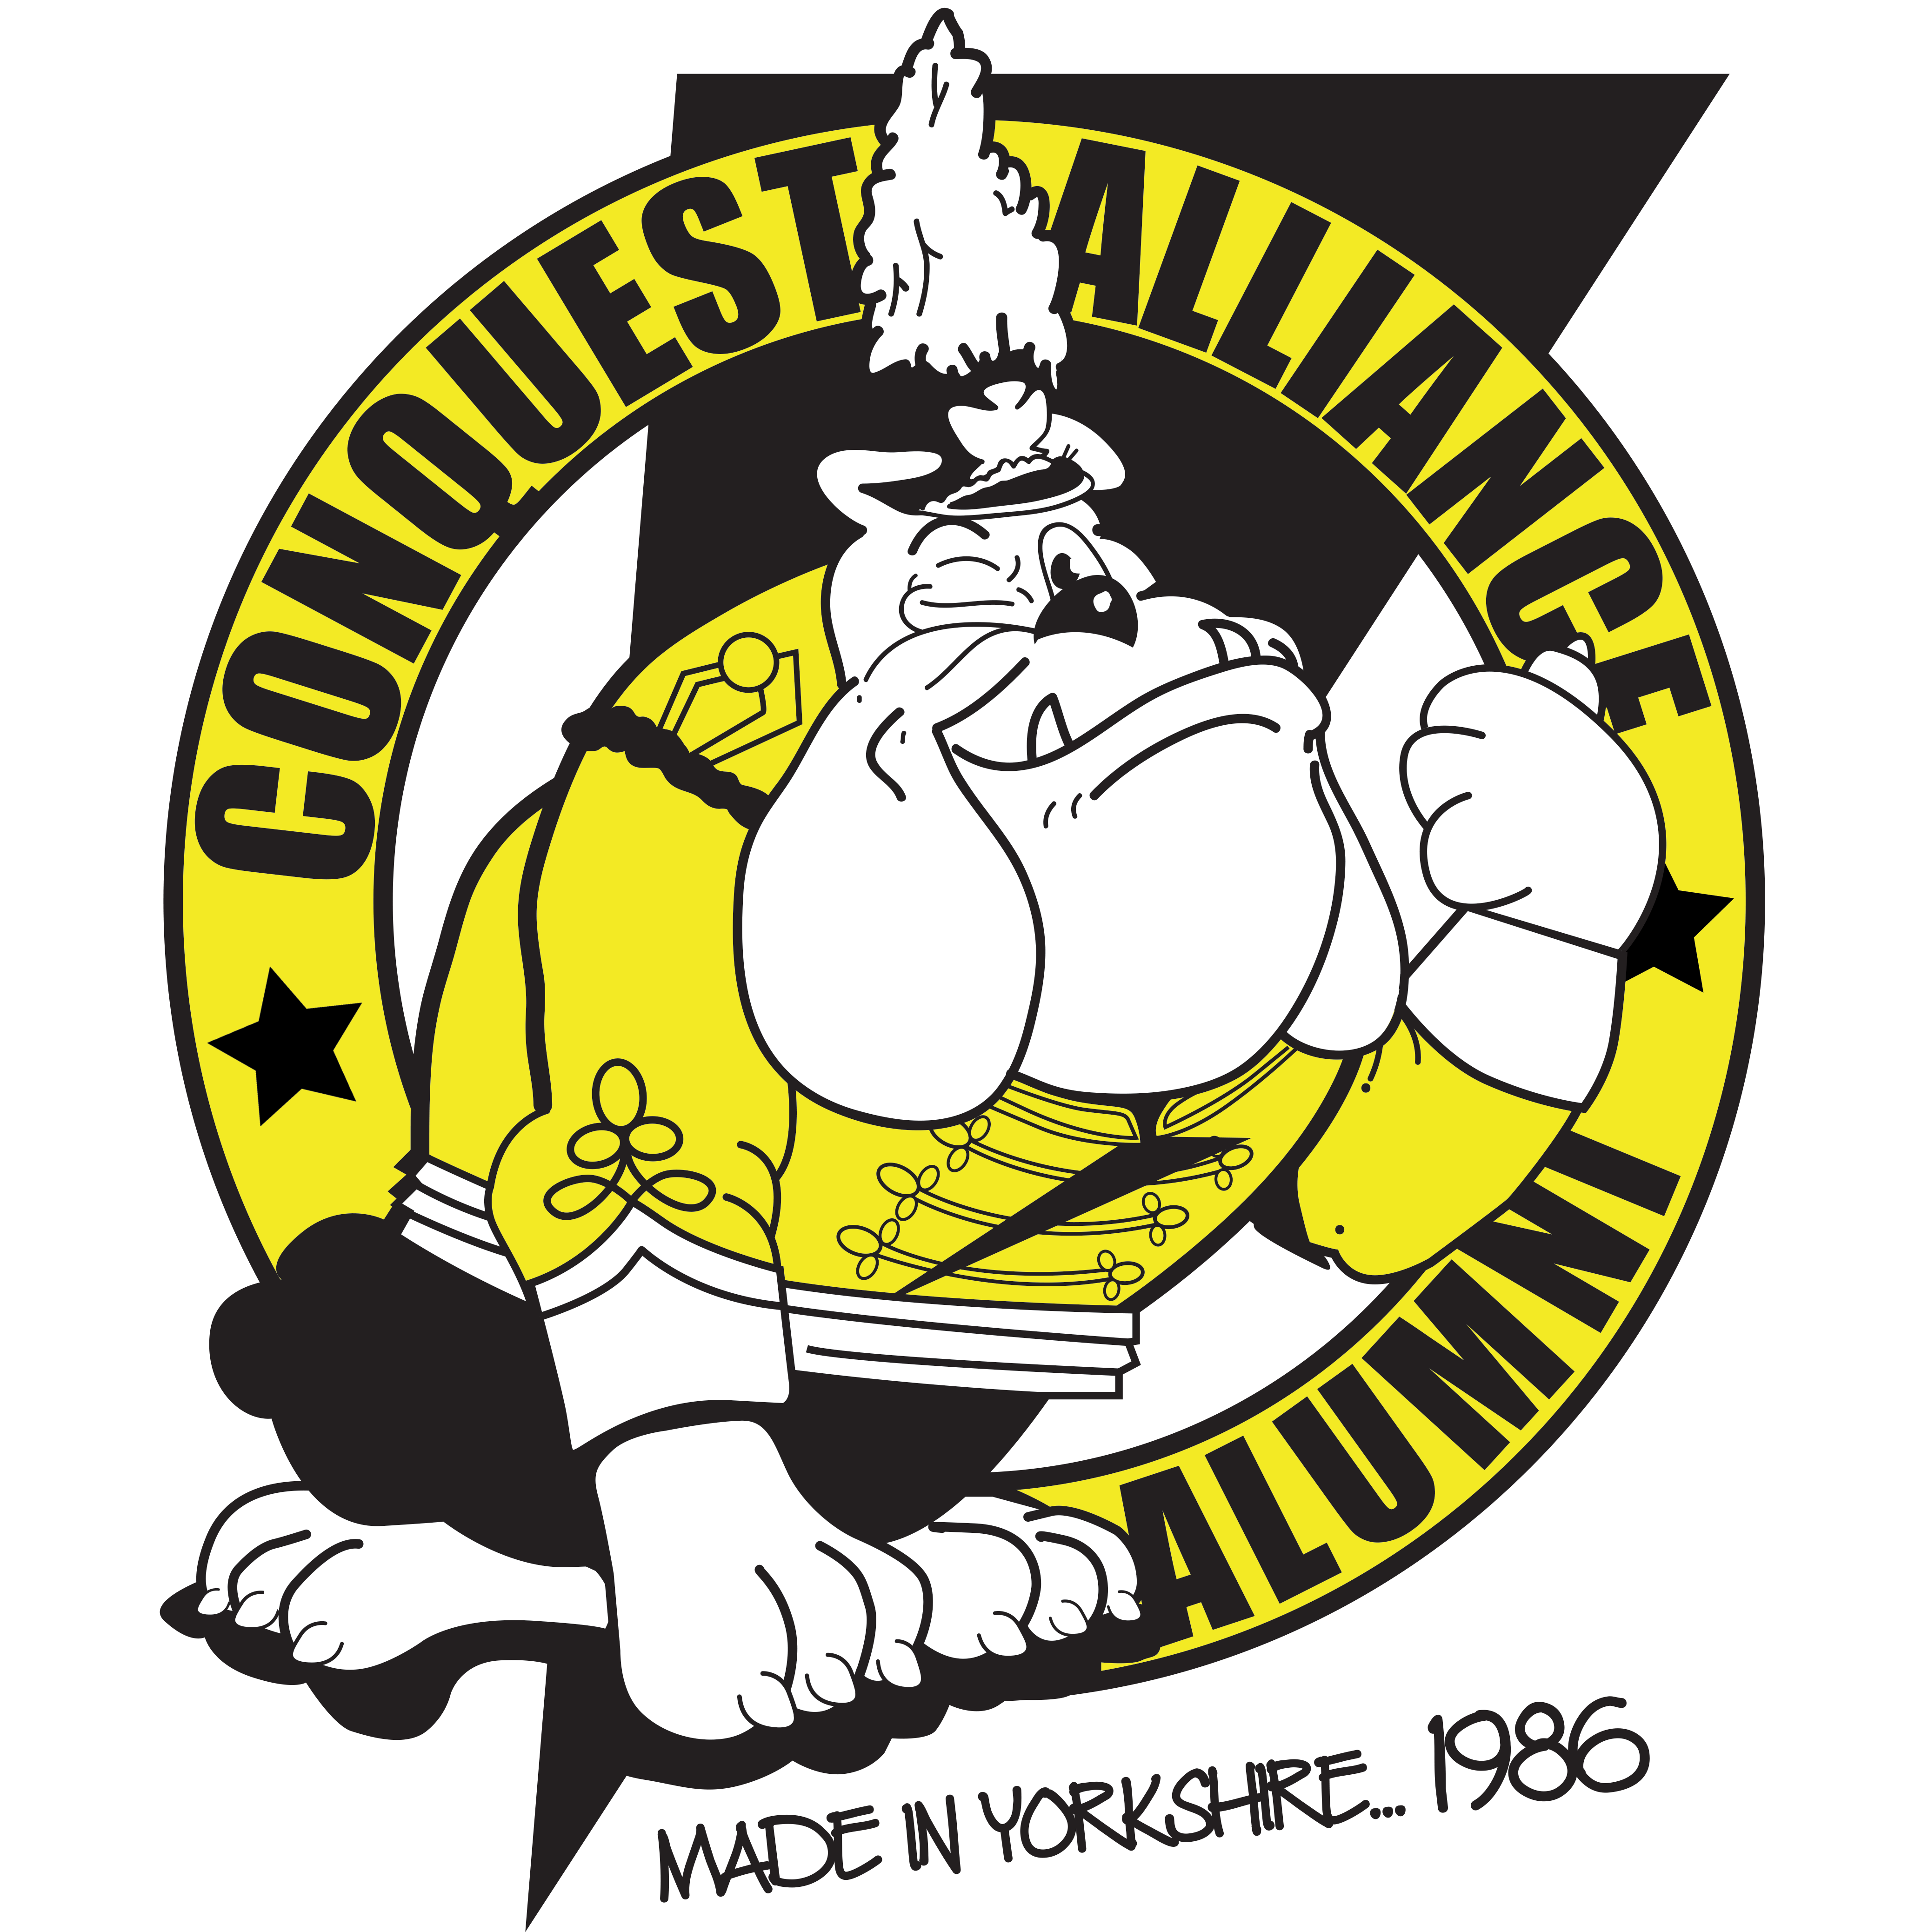 Conquest Alliance Allumni Merchandise T-shirts UK 80's Drum Corps